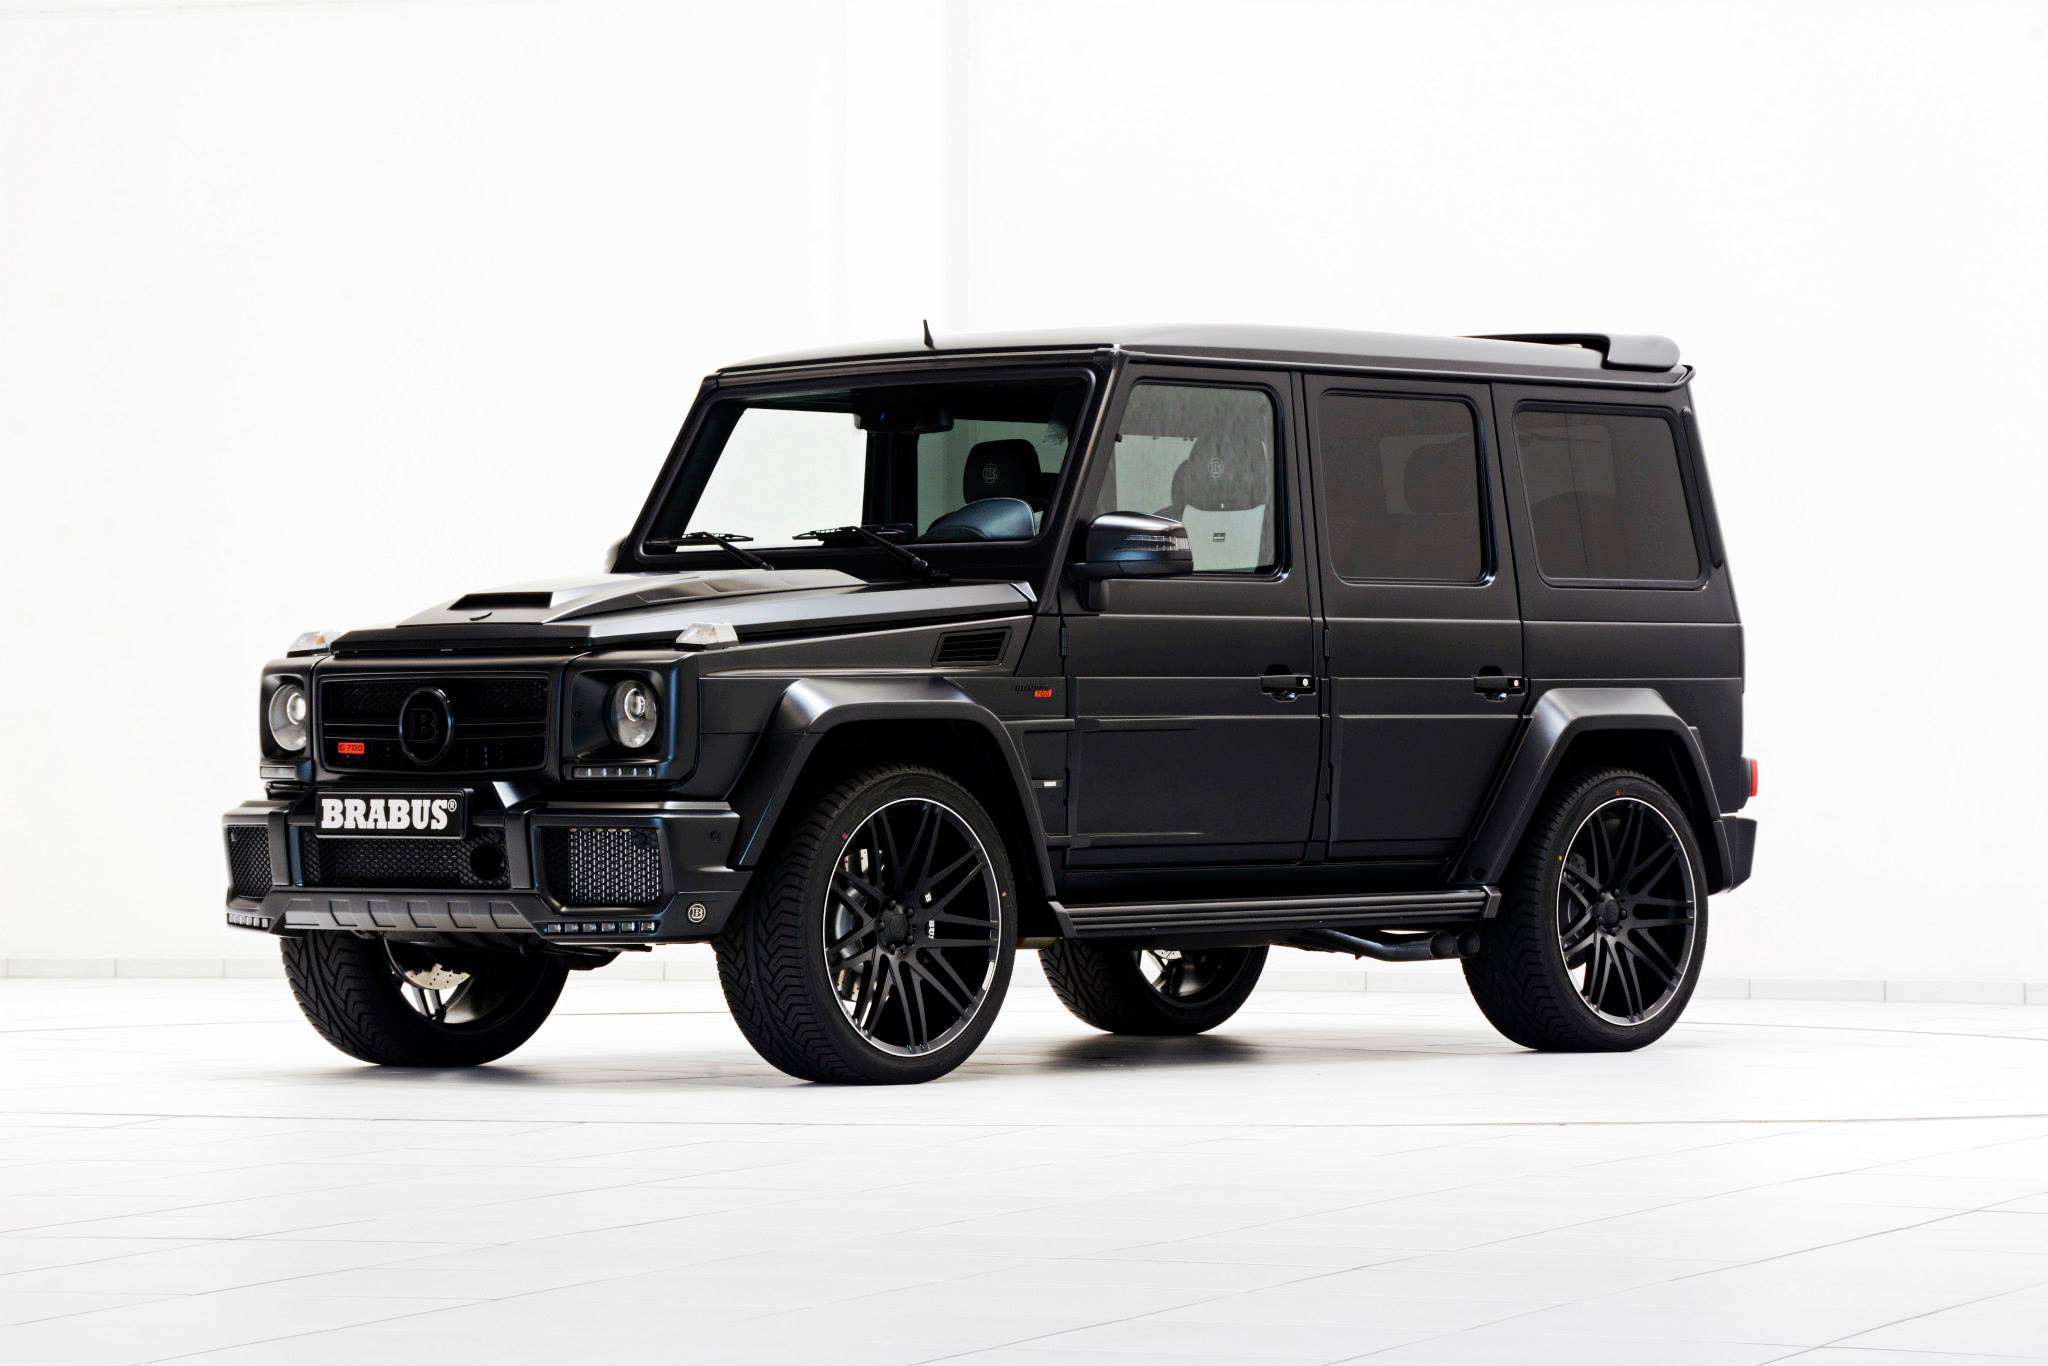 Brabus 700 Widestar For G63 Amg Is A Sinister Off Road